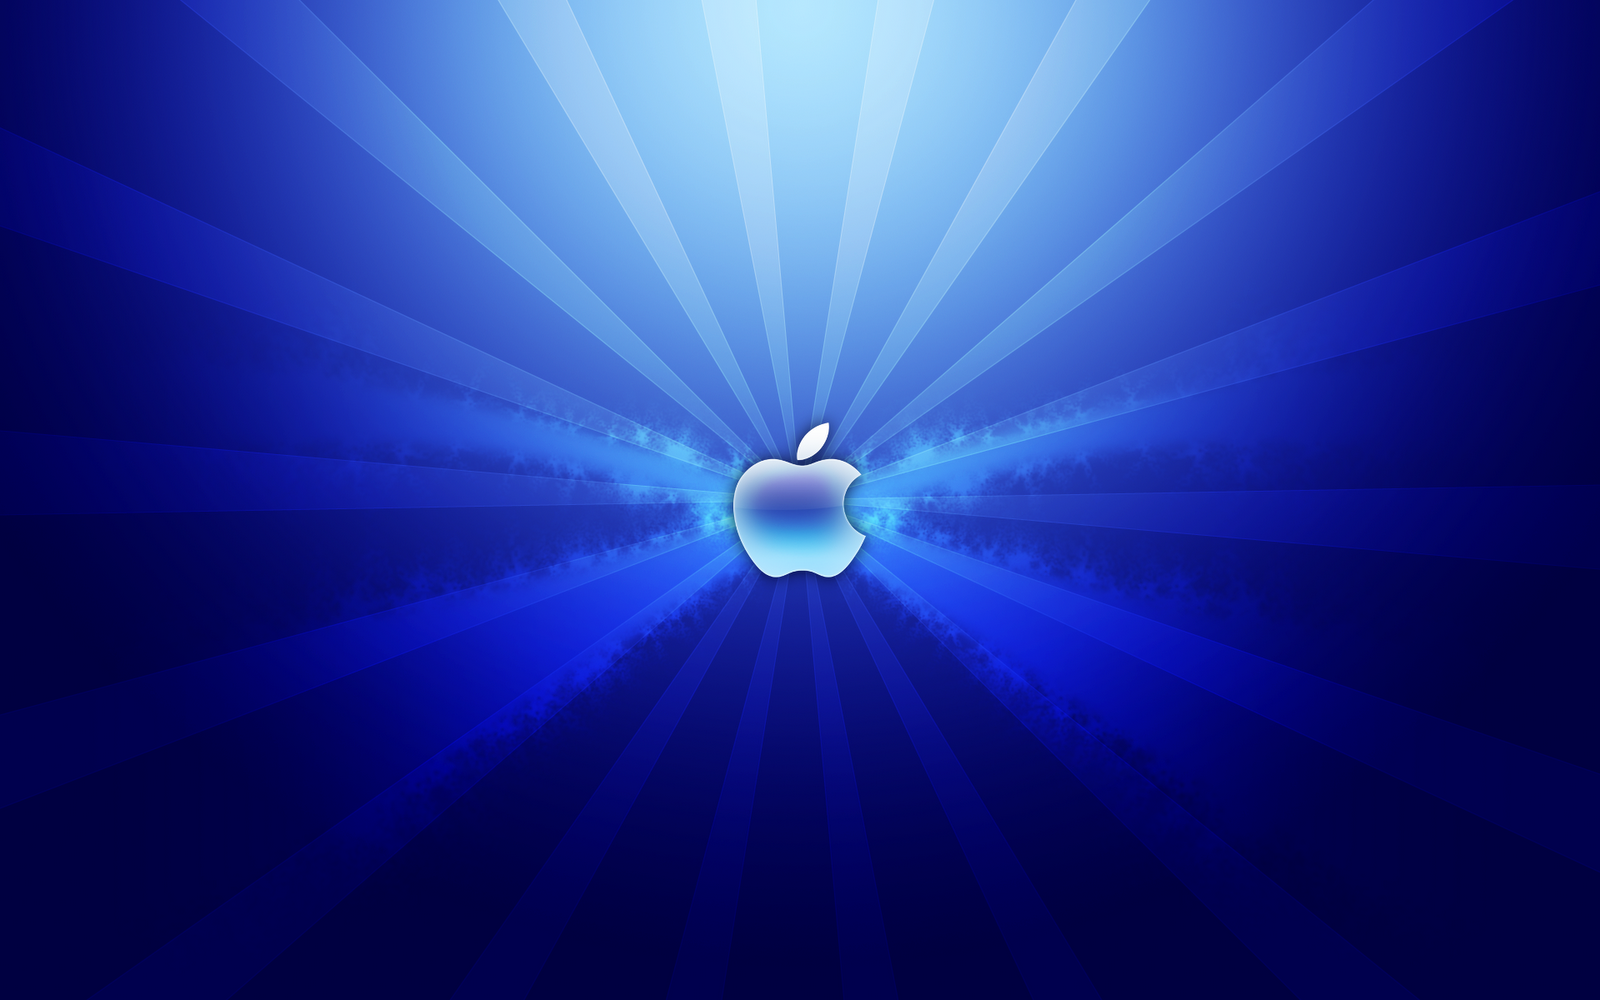 Free Download Laptop Wallpaper Here You Can See Light Blue Apple Laptop Wallpaper 1600x1000 For Your Desktop Mobile Tablet Explore 75 Cool Desktop Backgrounds For Mac Cool Wallpaper For